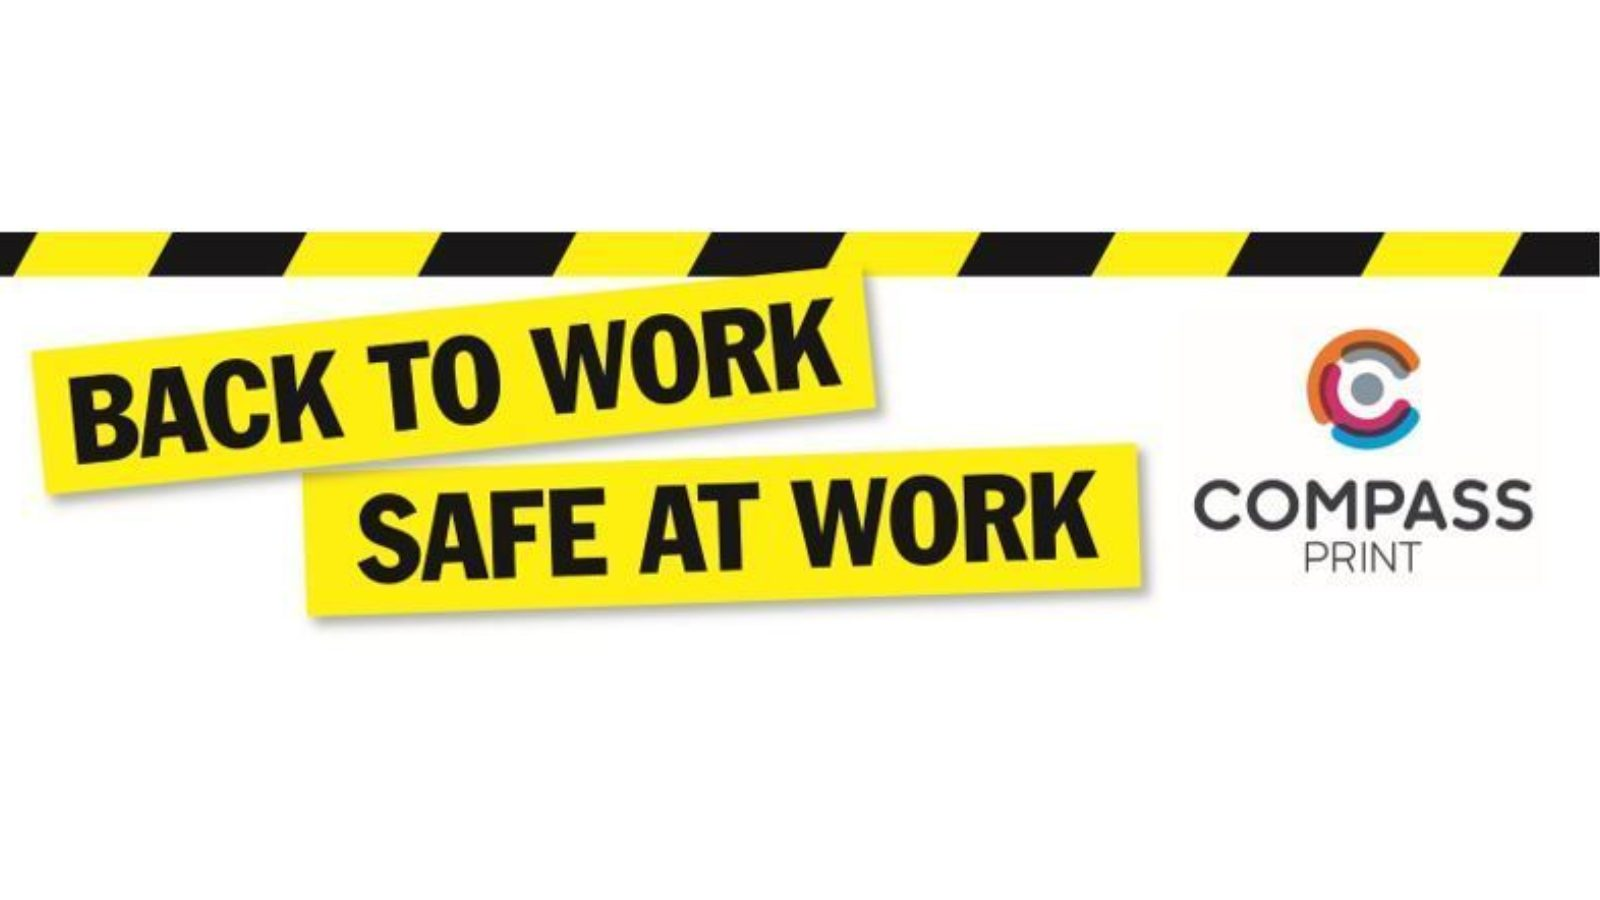 Protect your employees, customers and business against COVID-19